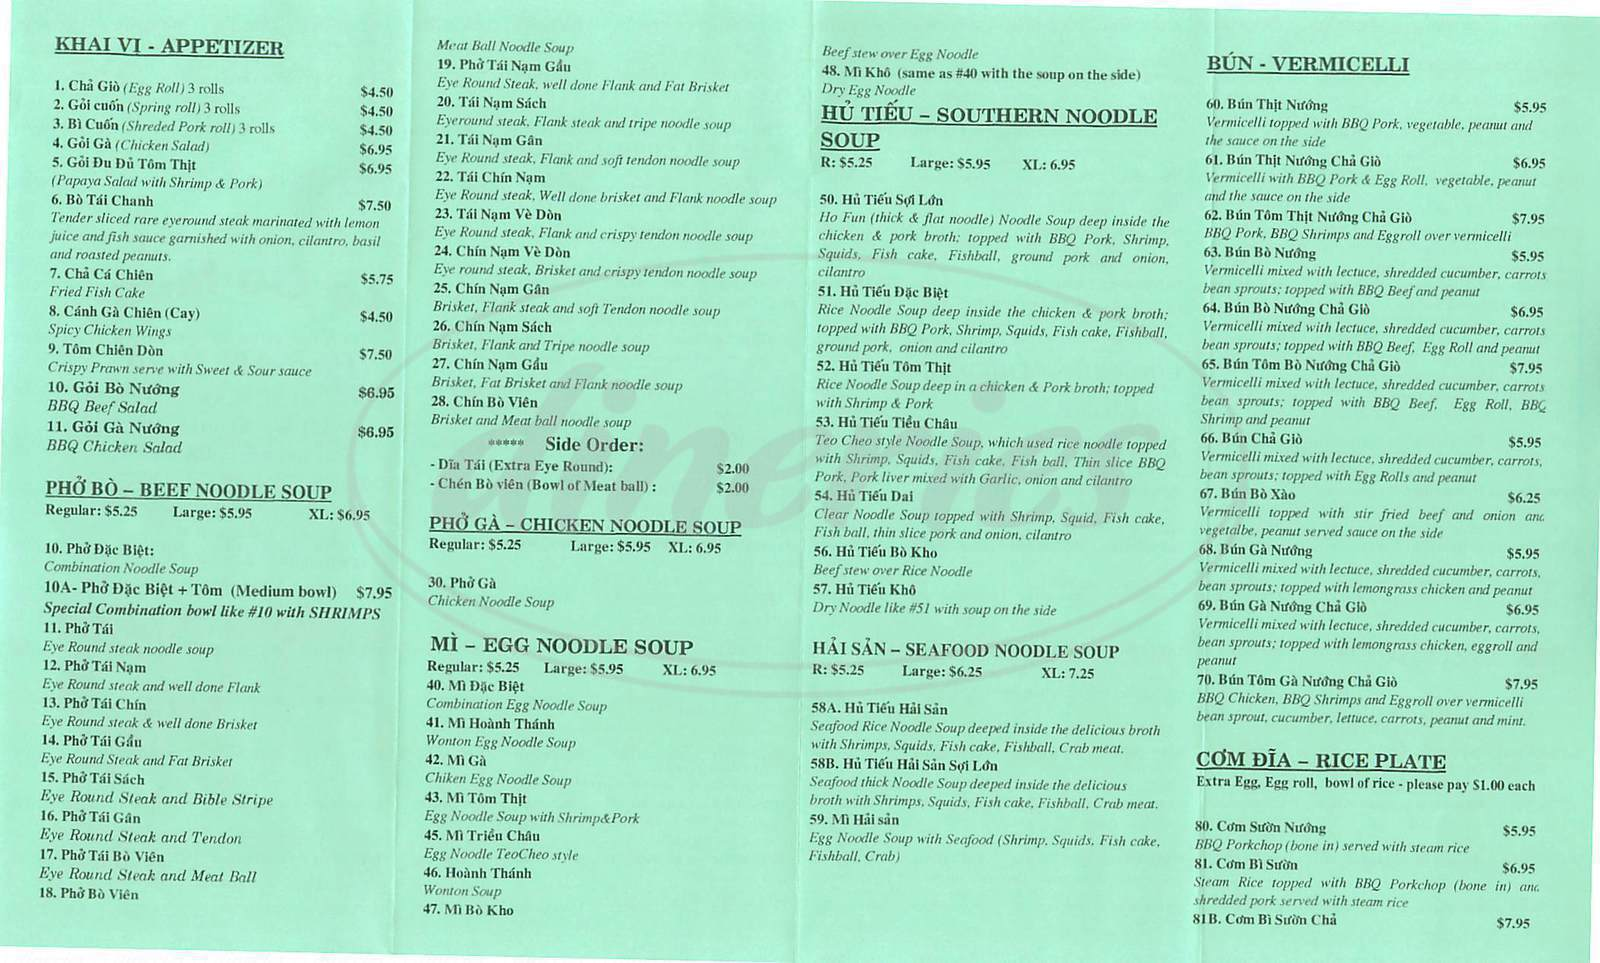 menu for Pho An Hoa